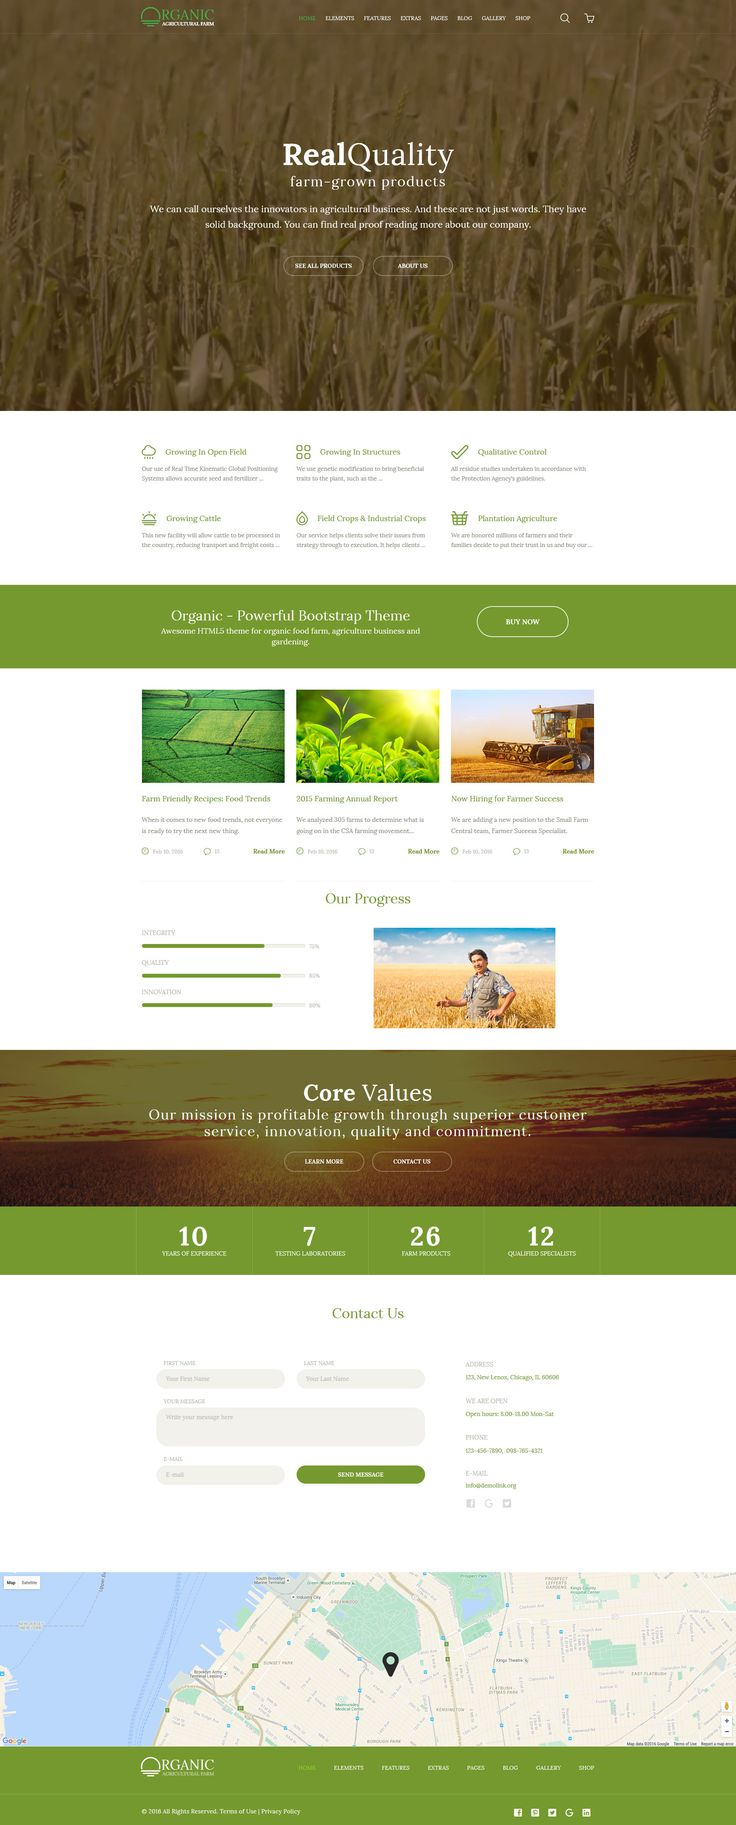 Agricultural Website Template http://www.templatemonster.com/website-templates/organic-agriculture-farm-multipurpose-website-template-58580.html